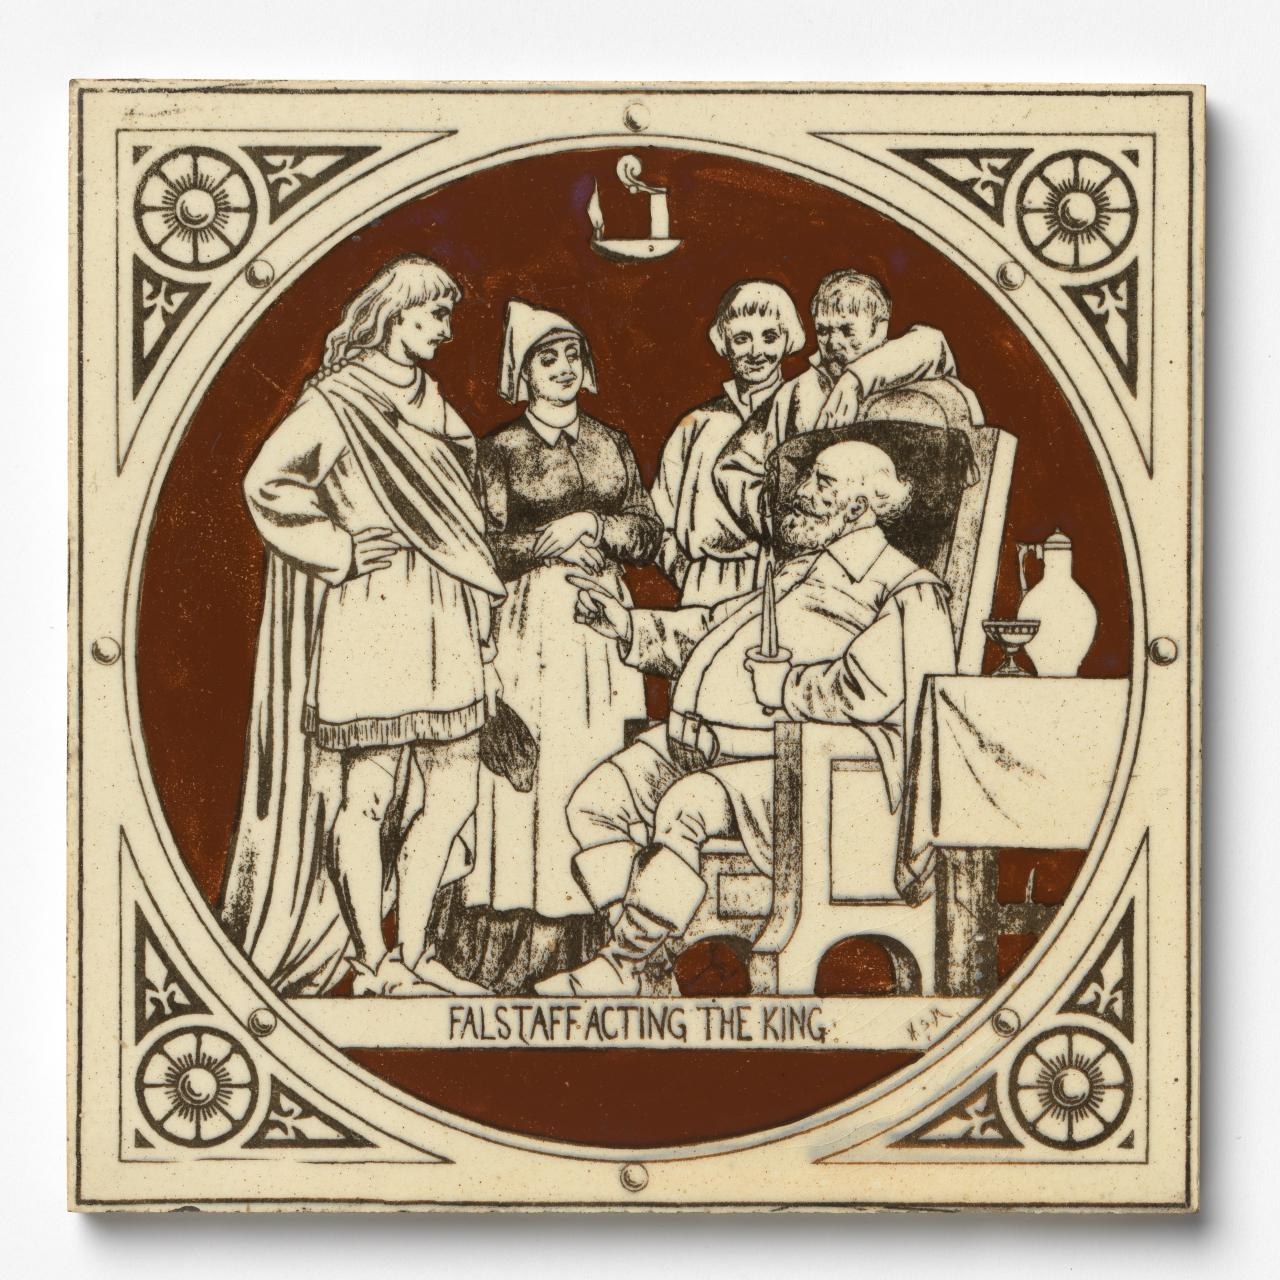 Falstaff acting the king, tile